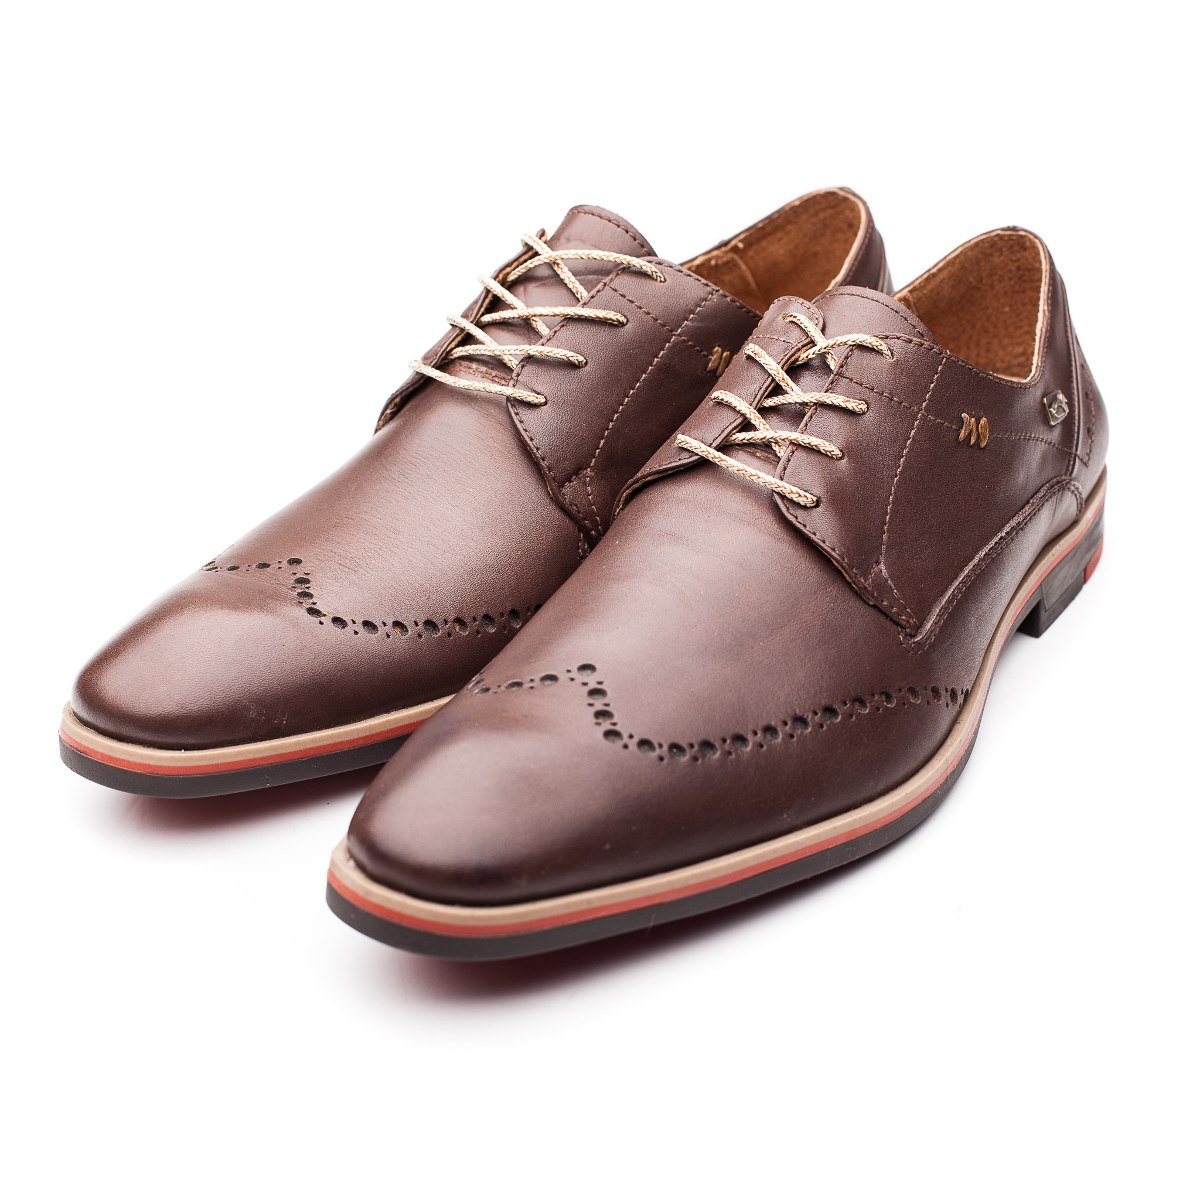 Chaussure Homme Cuir Chocolat Pato Pampa Picado $ 2,699.10 Dans